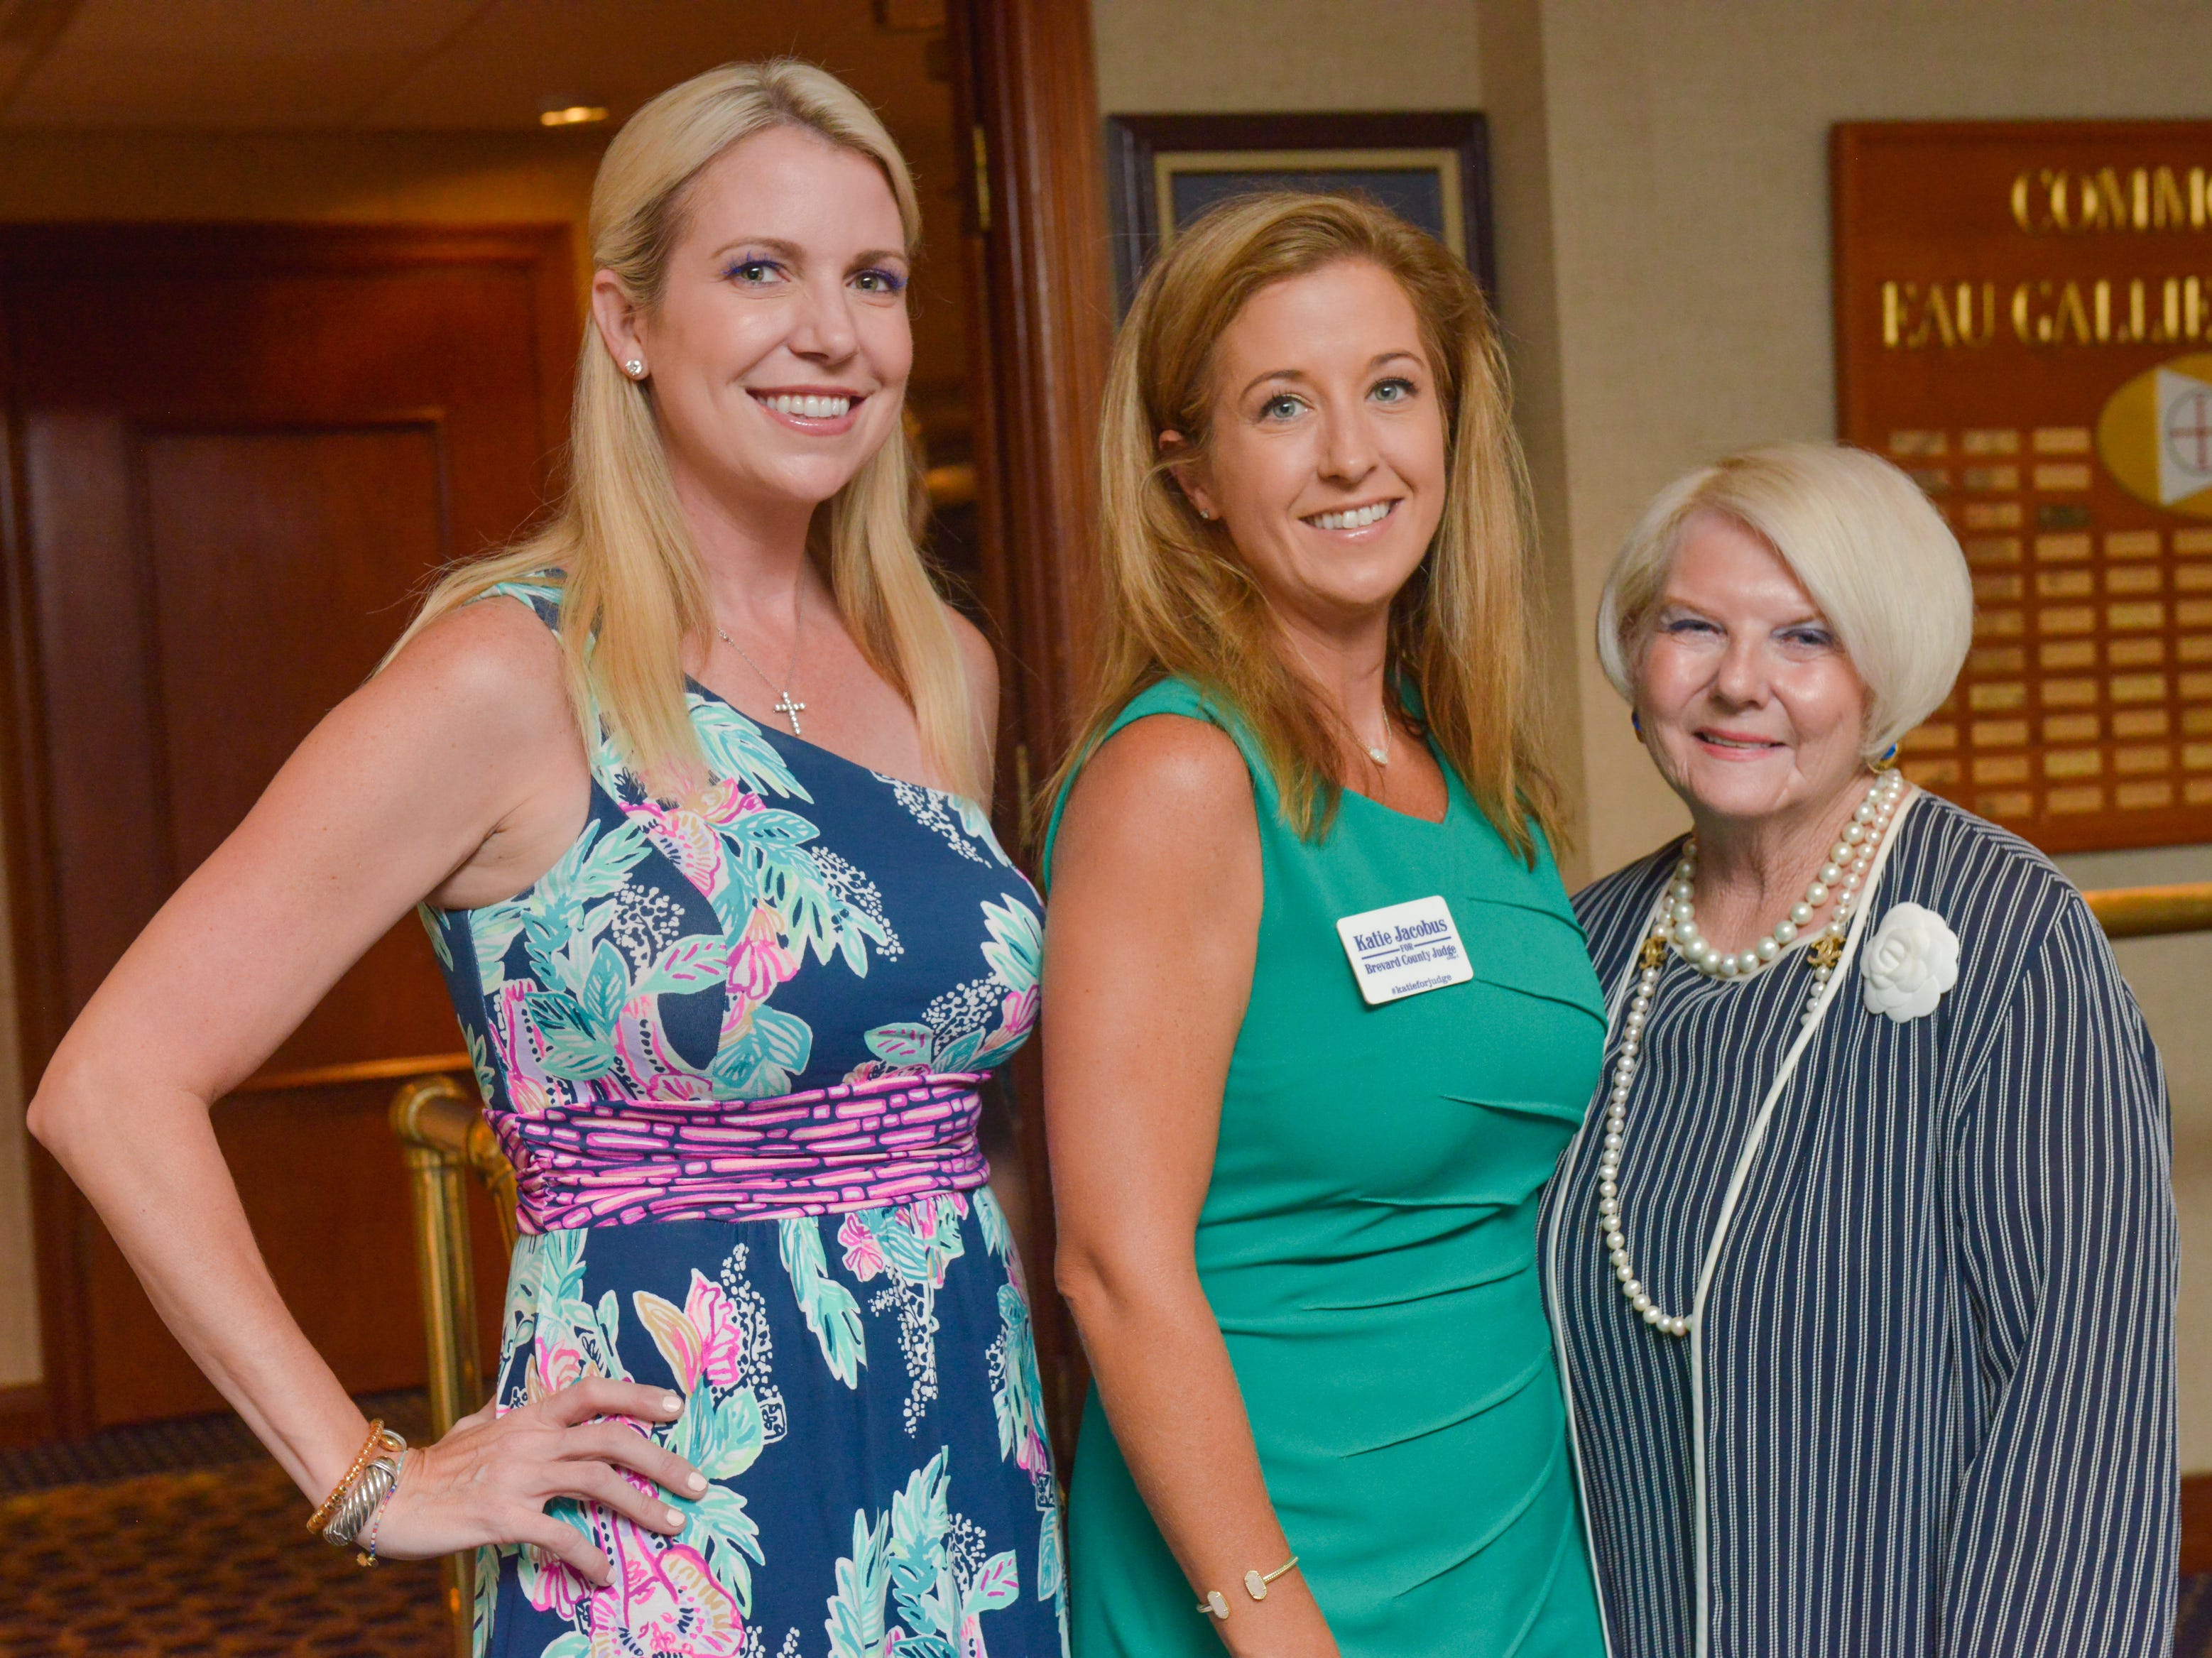 Robin Harris, Katie Jacobus and Darcia Jones Francey at Friends of Sally's House luncheon at the Eau Gallie Yacht Club.